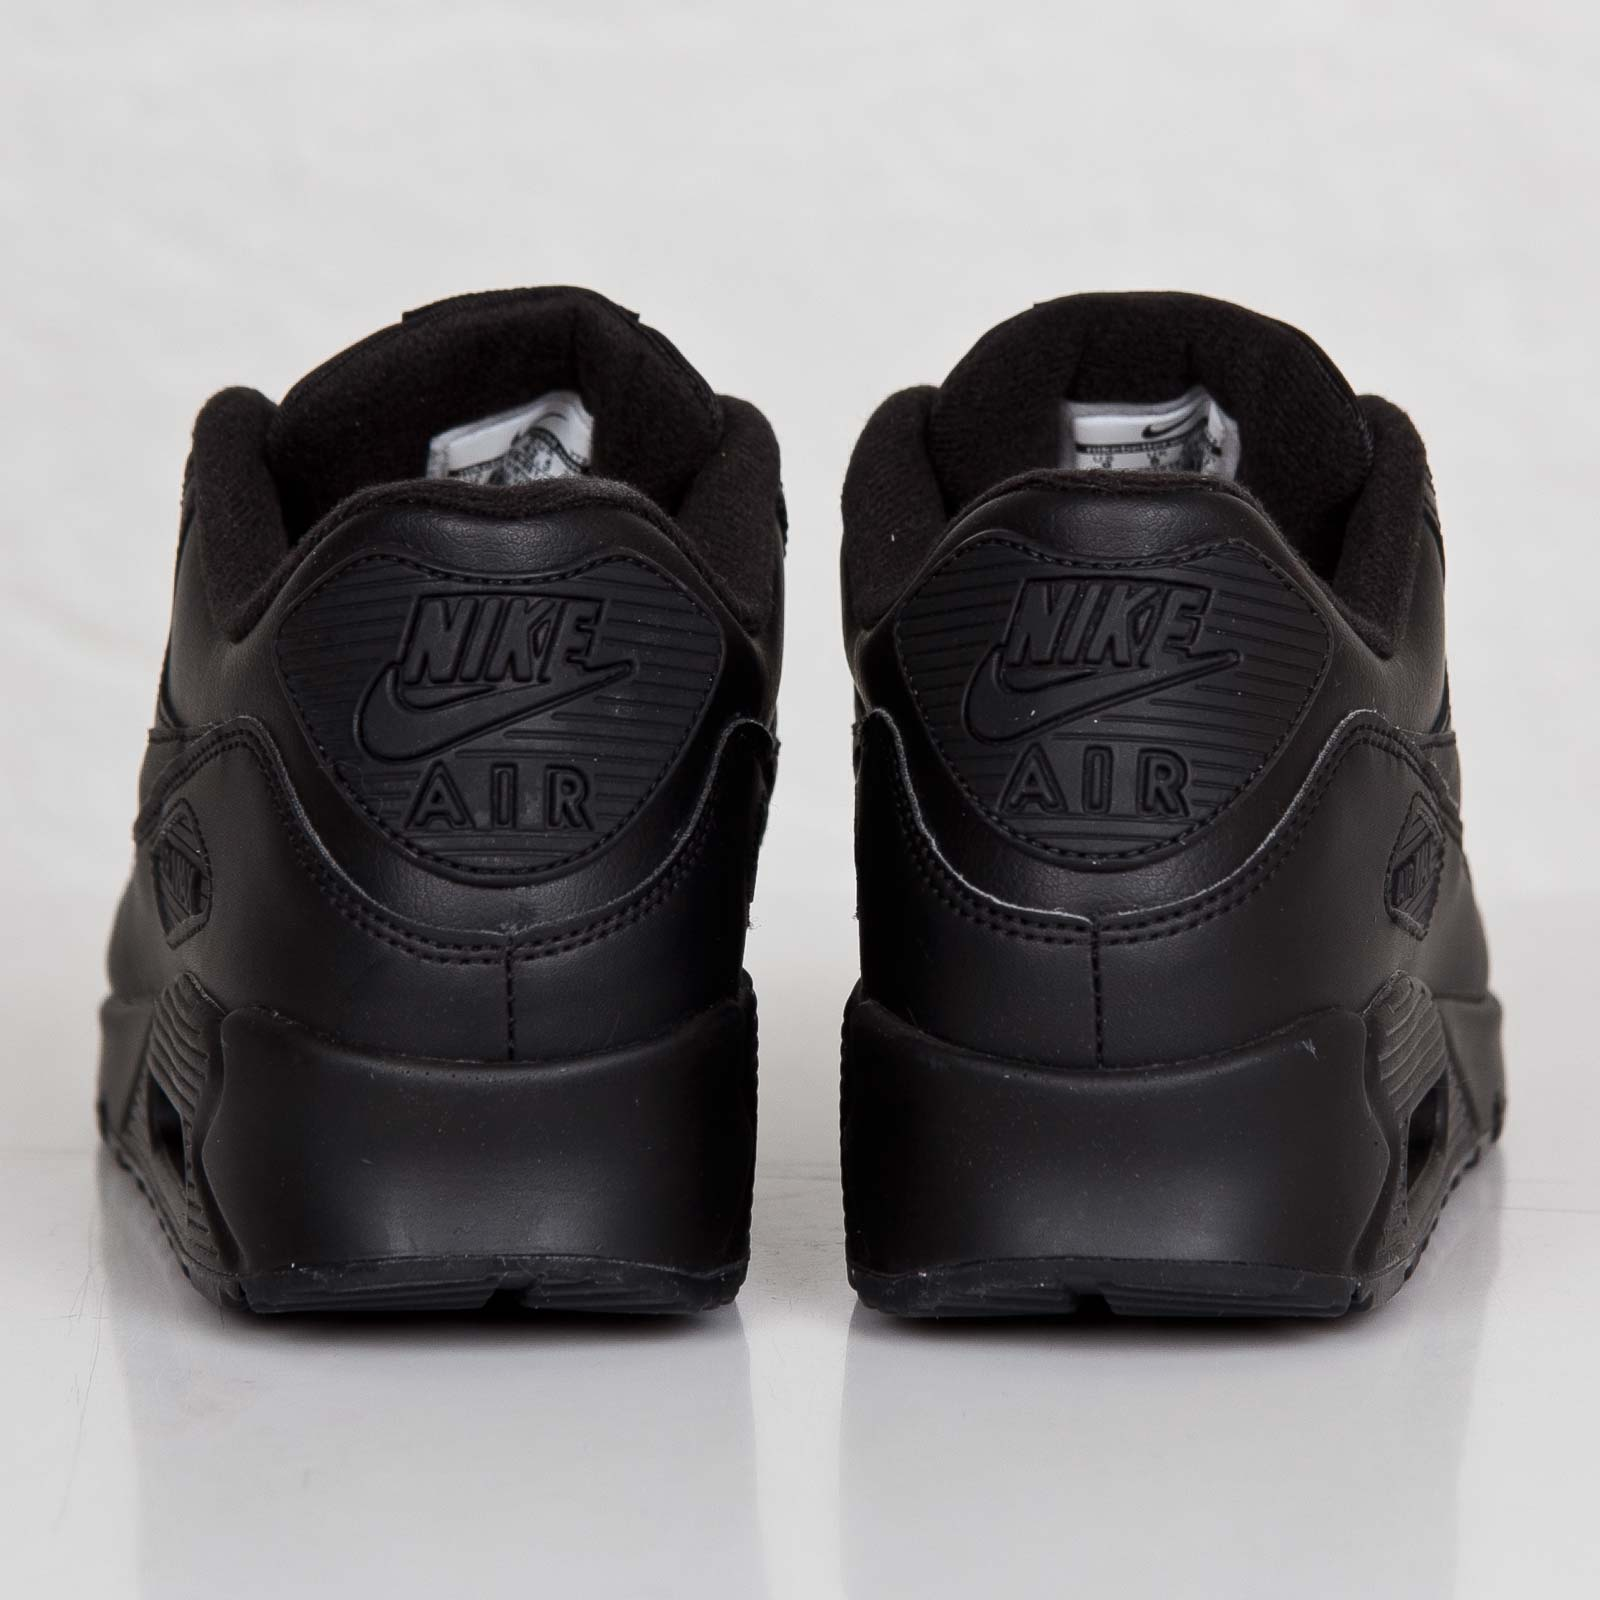 e2d81f05020ee Nike Air Max 90 Leather - 302519-001 - Sneakersnstuff